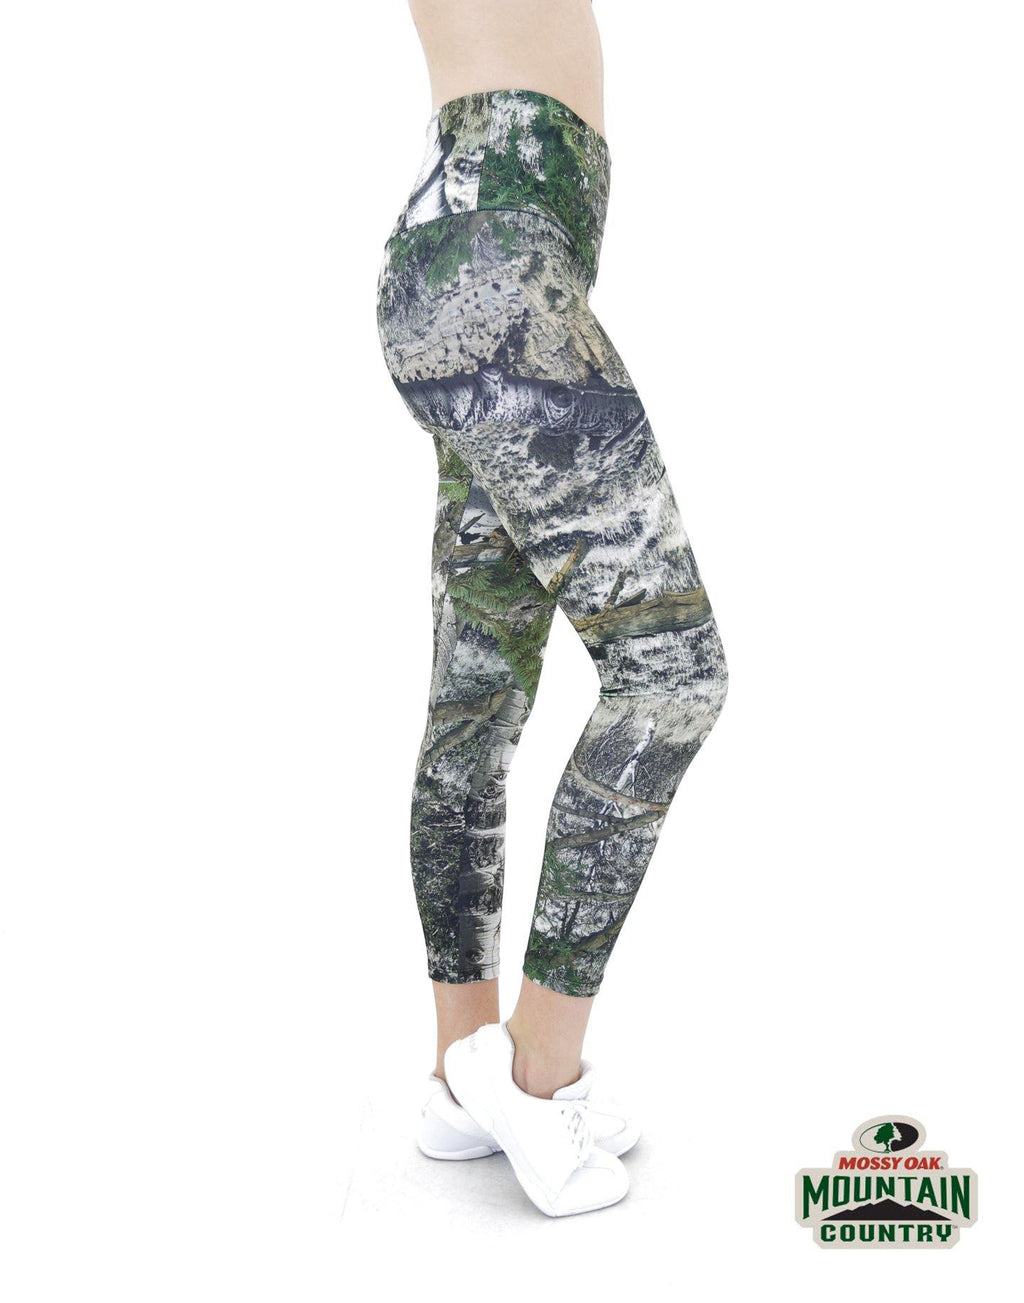 Apsara Leggings High Waist Cropped, Mossy Oak Mountain Country - Apsara Style